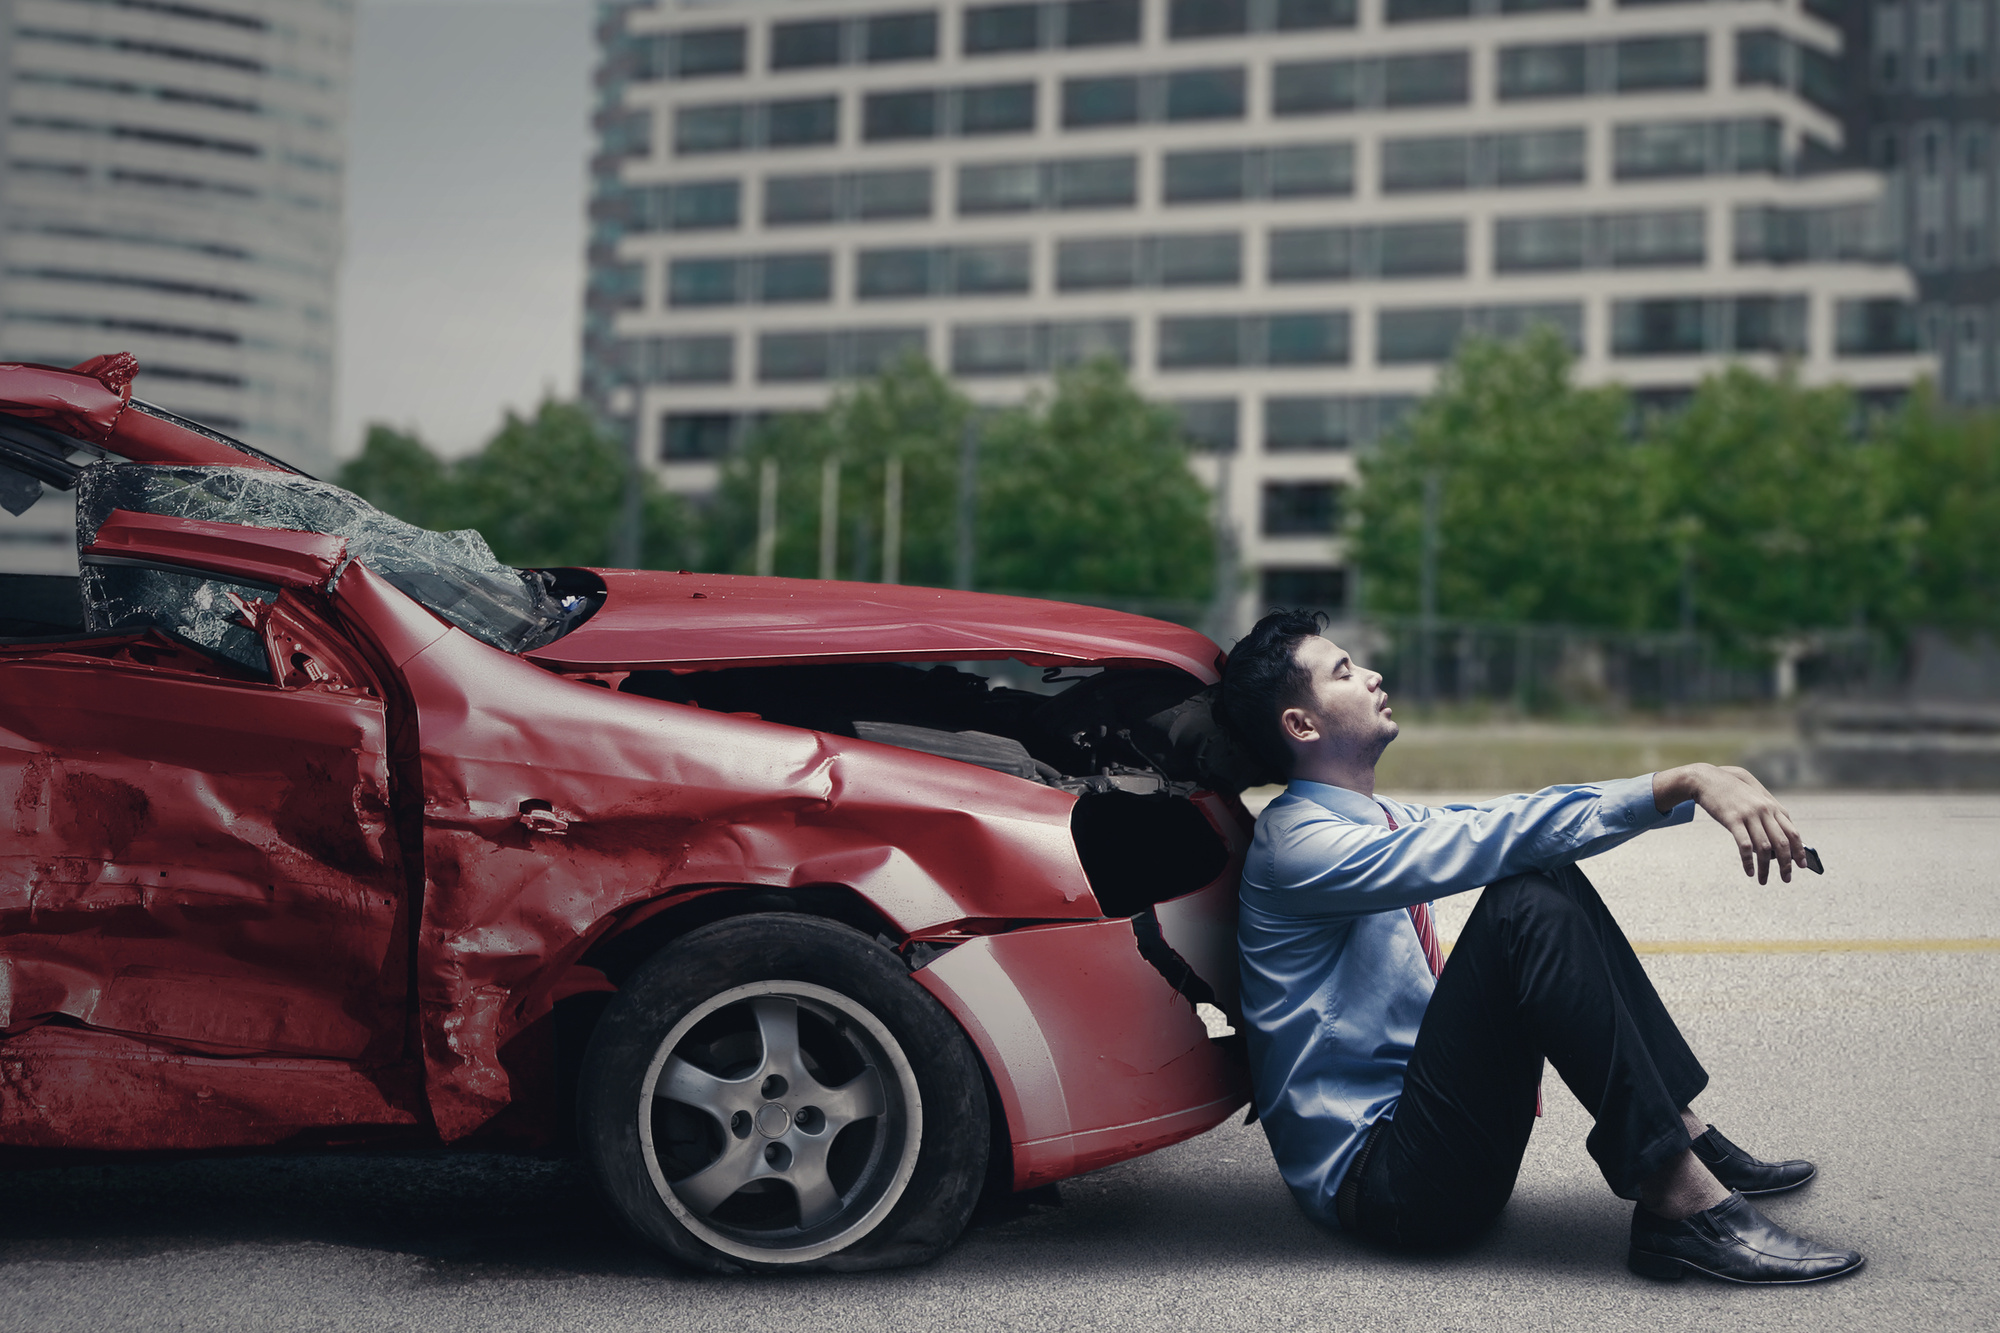 There are several types of auto accident injuries that you need to avoid. You can learn more about car accidents by clicking here.